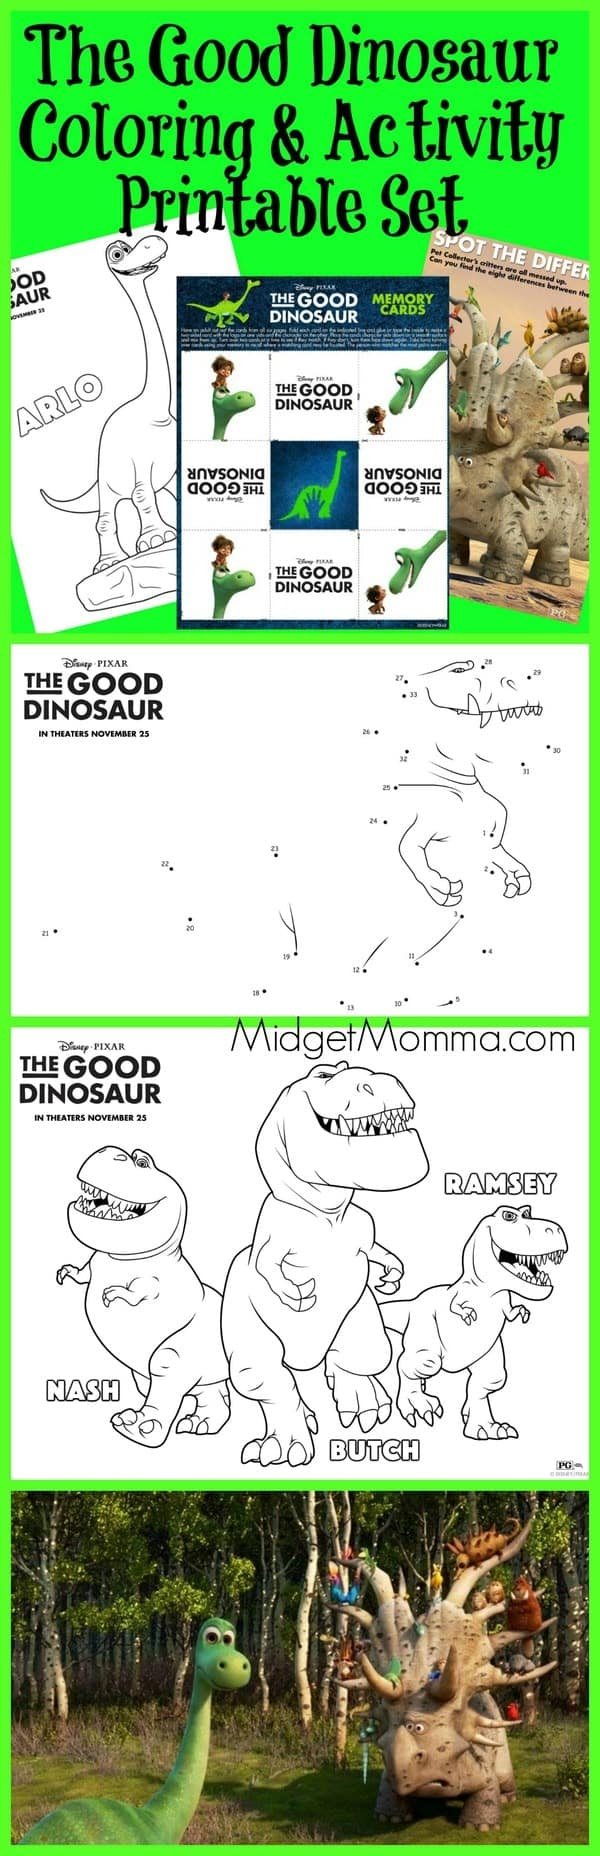 the good dinosaur printable coloring pages - Dino Printable Coloring Pages